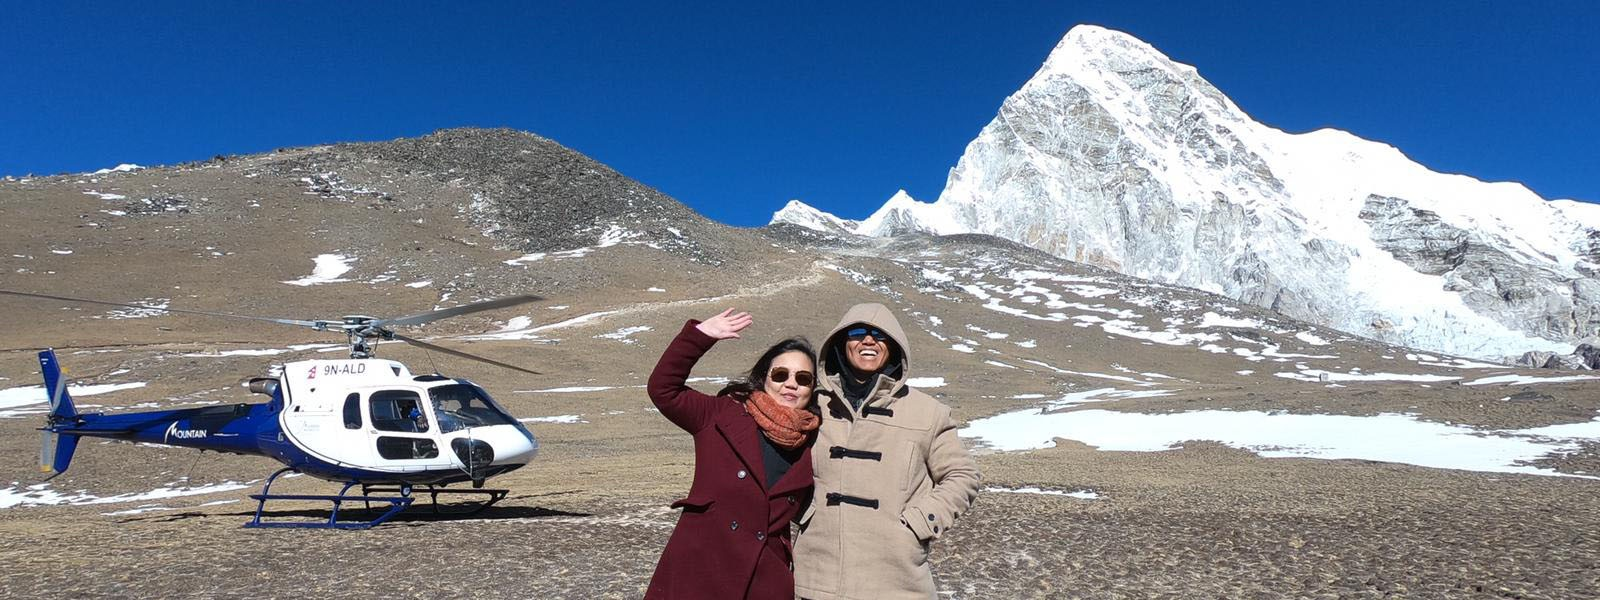 Heli Tours and Heli trekking